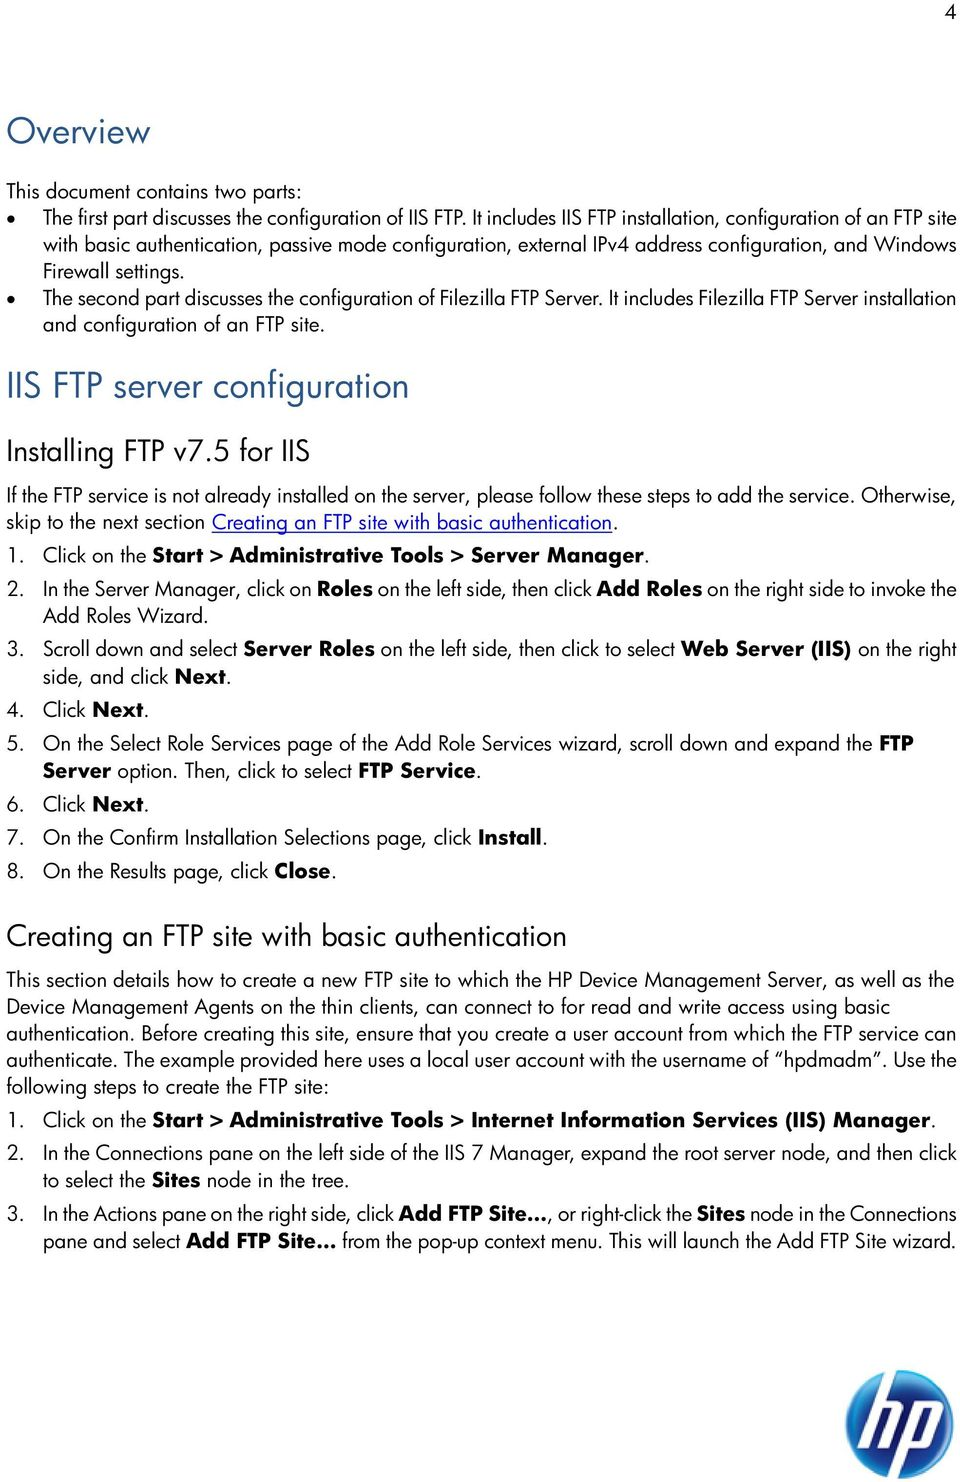 The second part discusses the configuration of Filezilla FTP Server. It includes Filezilla FTP Server installation and configuration of an FTP site. IIS FTP server configuration Installing FTP v7.